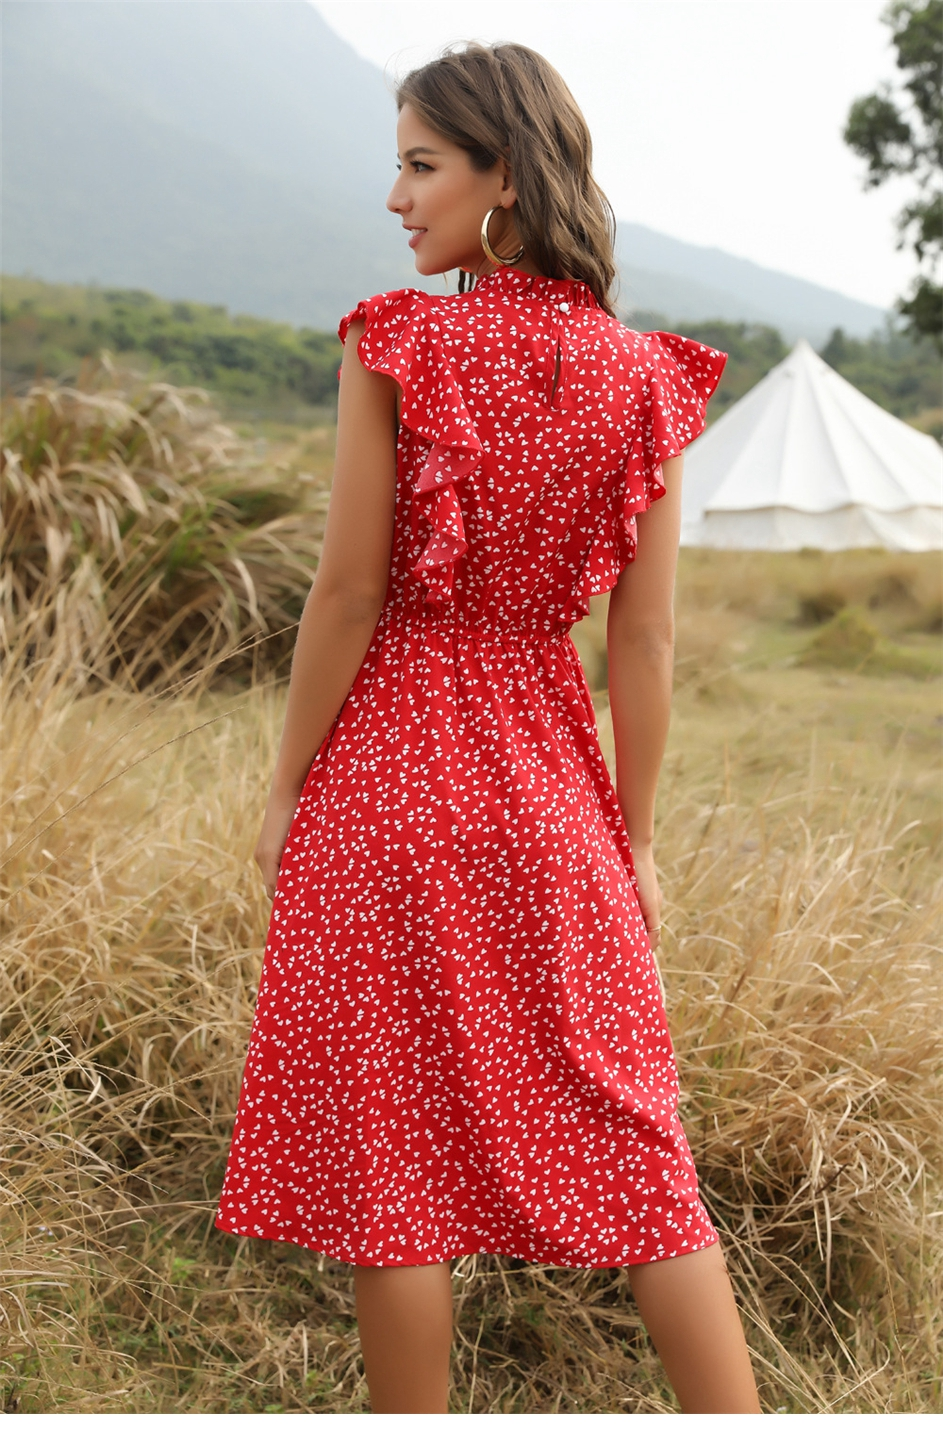 The elegant back view of Women's Casual Butterfly Sleeve Ruffles Chiffon Summer Dress